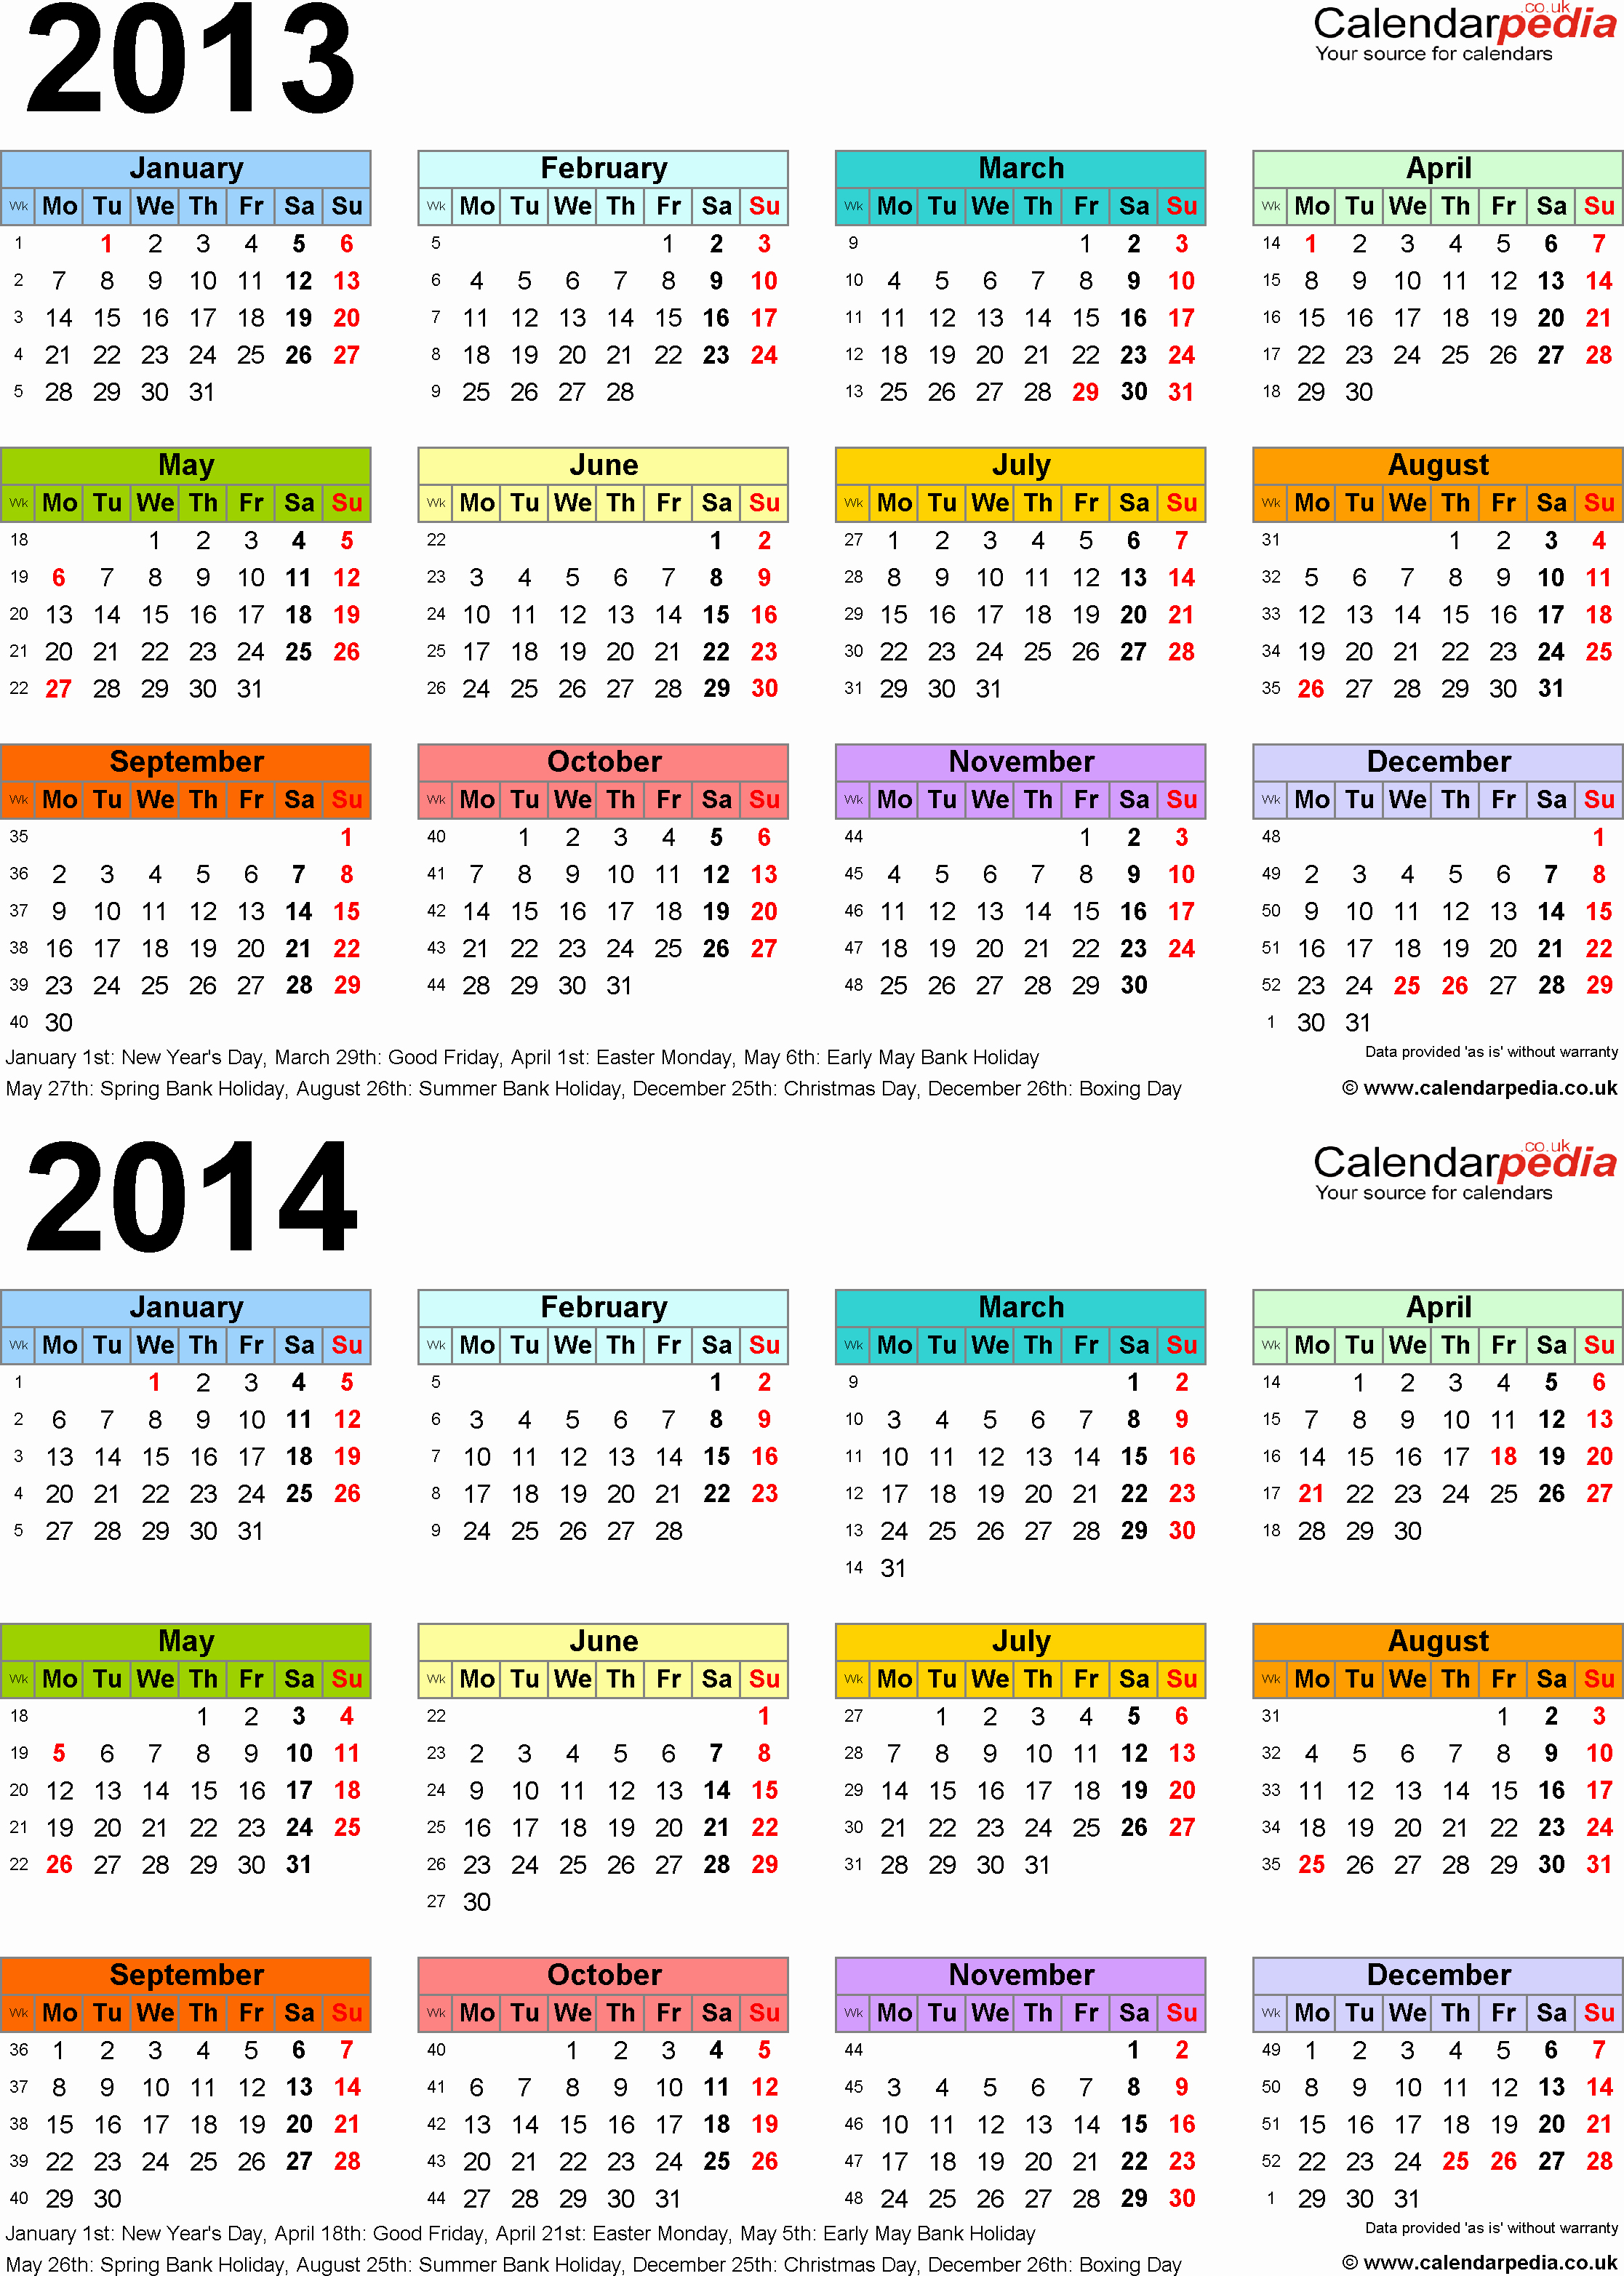 2013 Calendar Printable One Page Luxury Two Year Calendars for 2013 & 2014 Uk for Excel